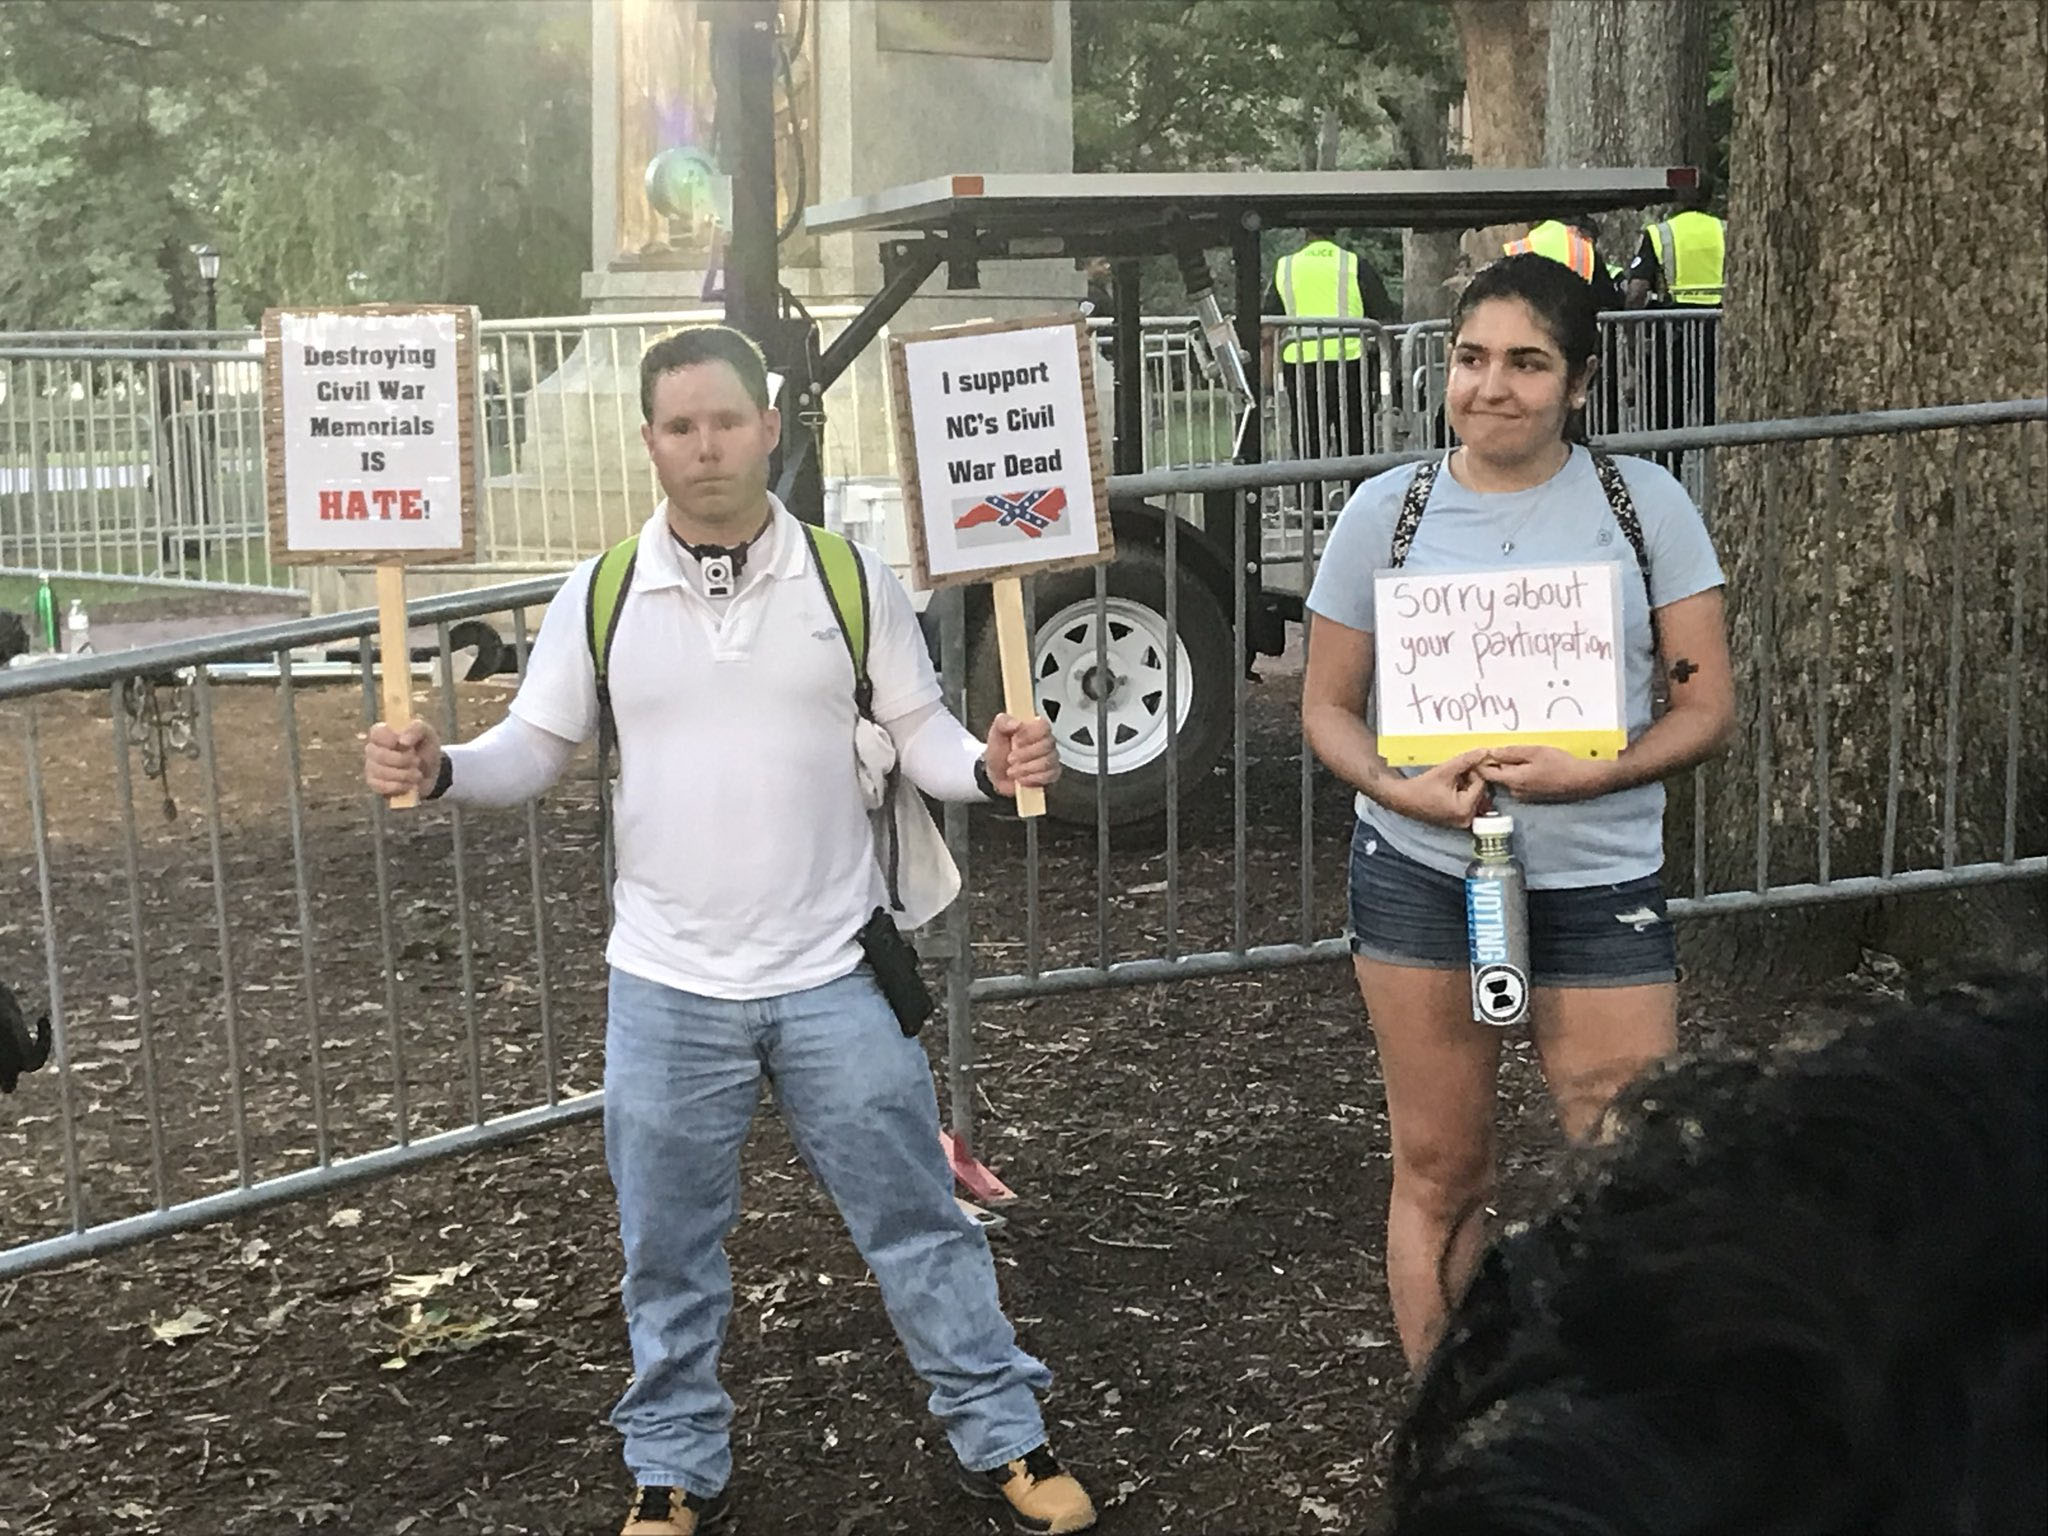 <div class='meta'><div class='origin-logo' data-origin='WTVD'></div><span class='caption-text' data-credit=''>Demonstrations at the Silent Sam statue site on the UNC campus Thursday.</span></div>